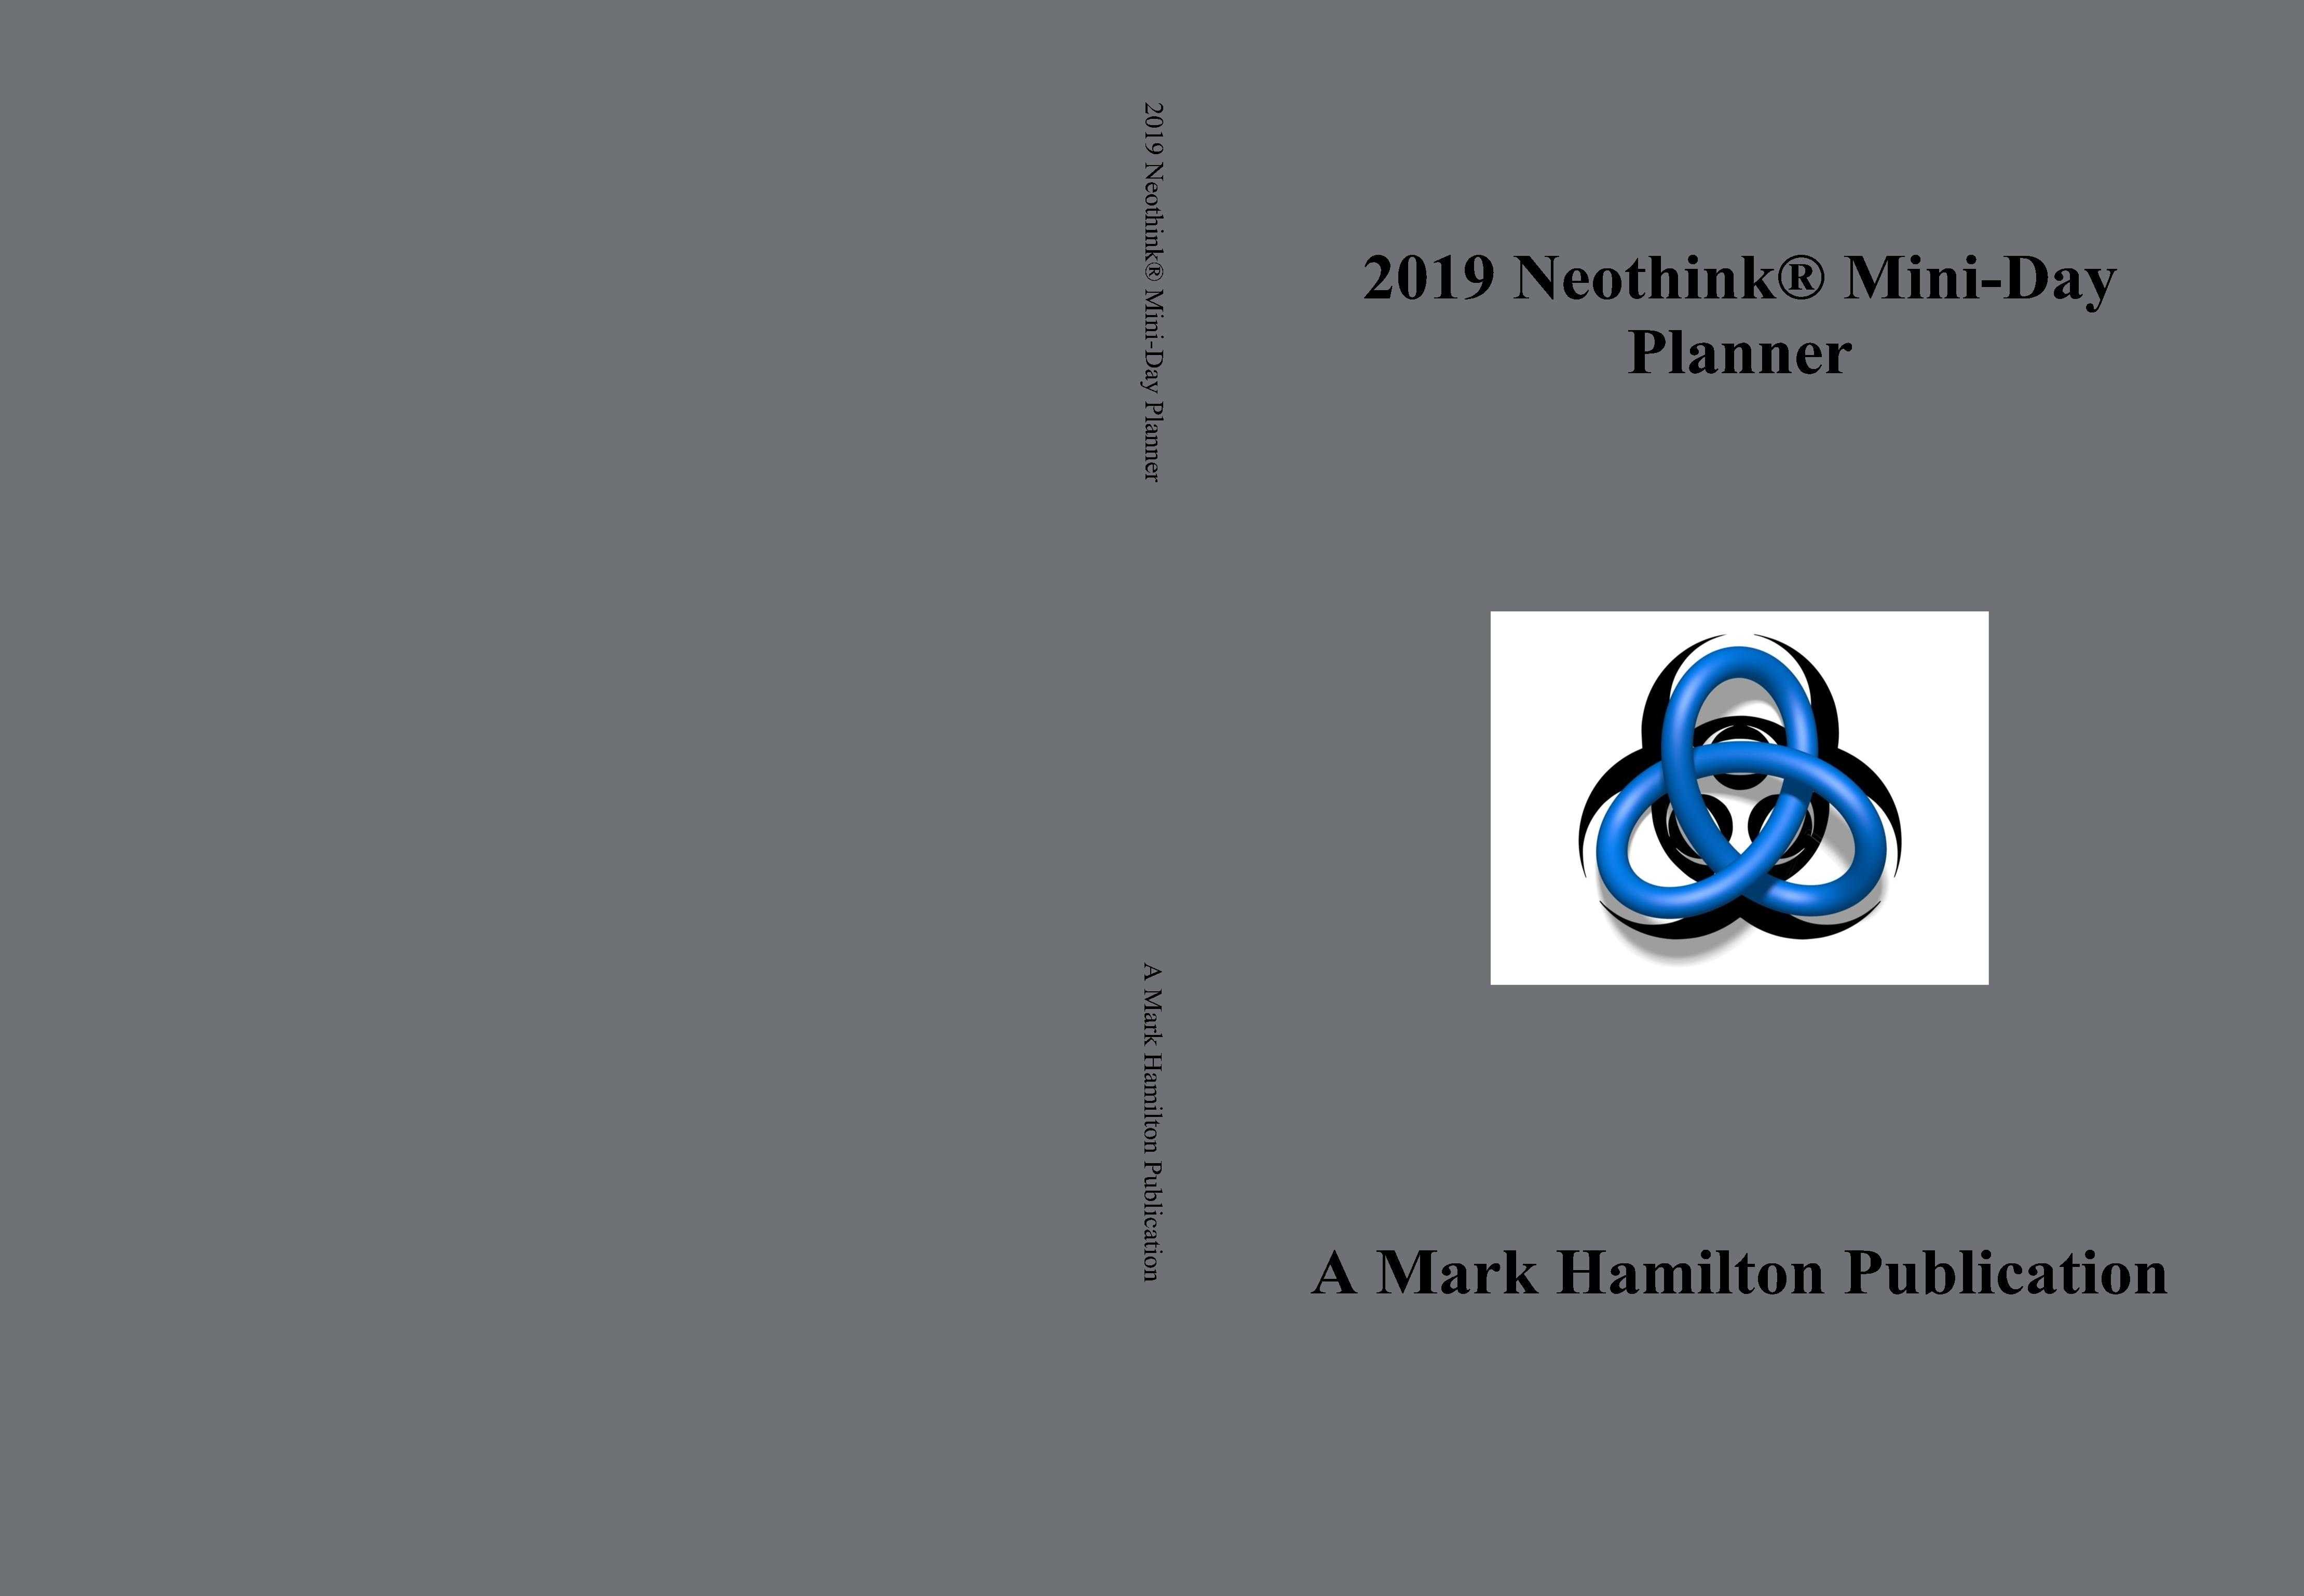 2019 Neothink® Mini-Day Planner cover image